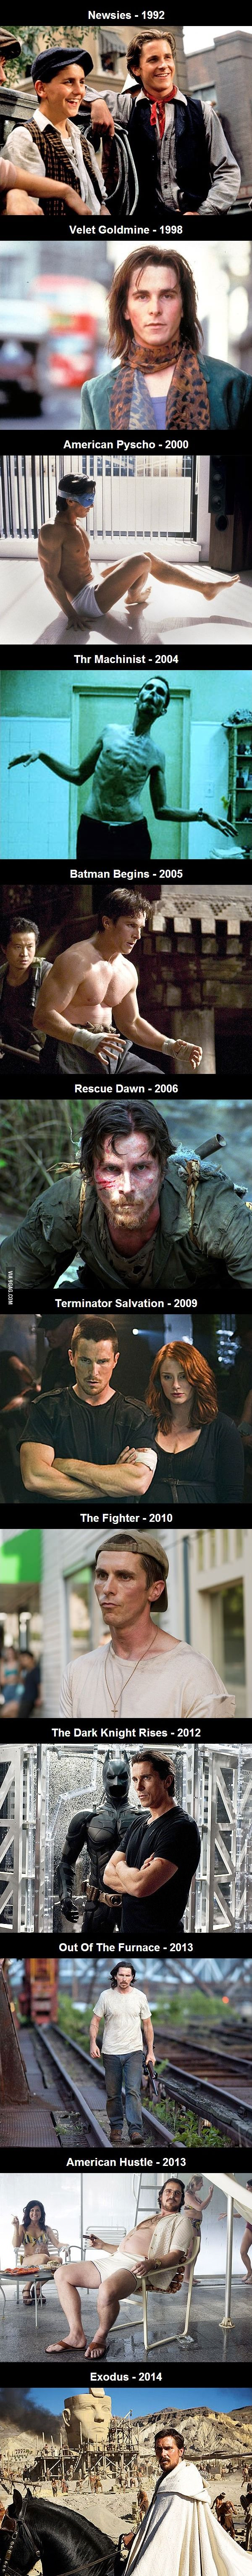 Christian Bale's body transformations throughout the years.